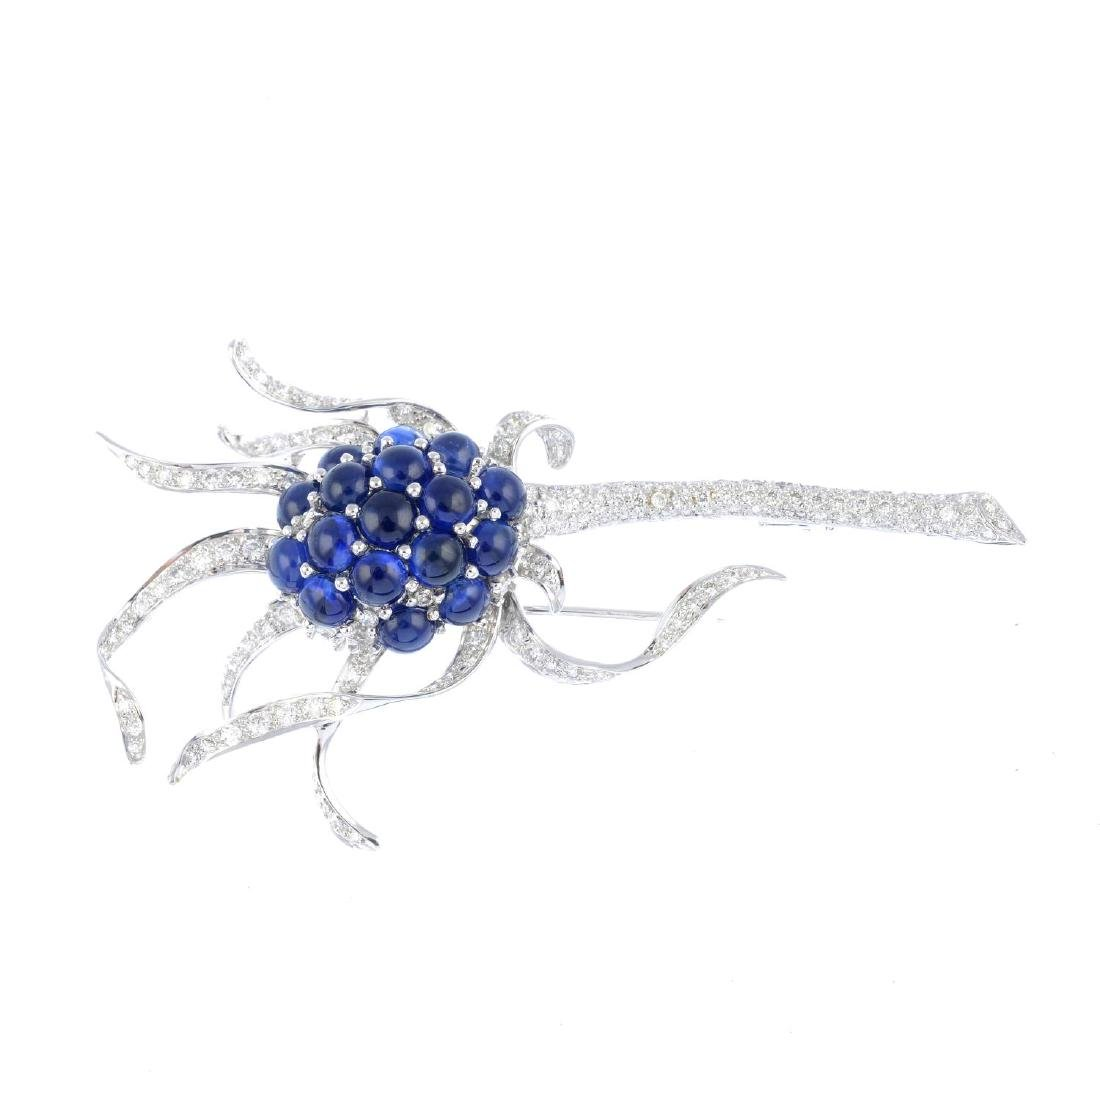 (203187) A sapphire and diamond brooch. Designed as a